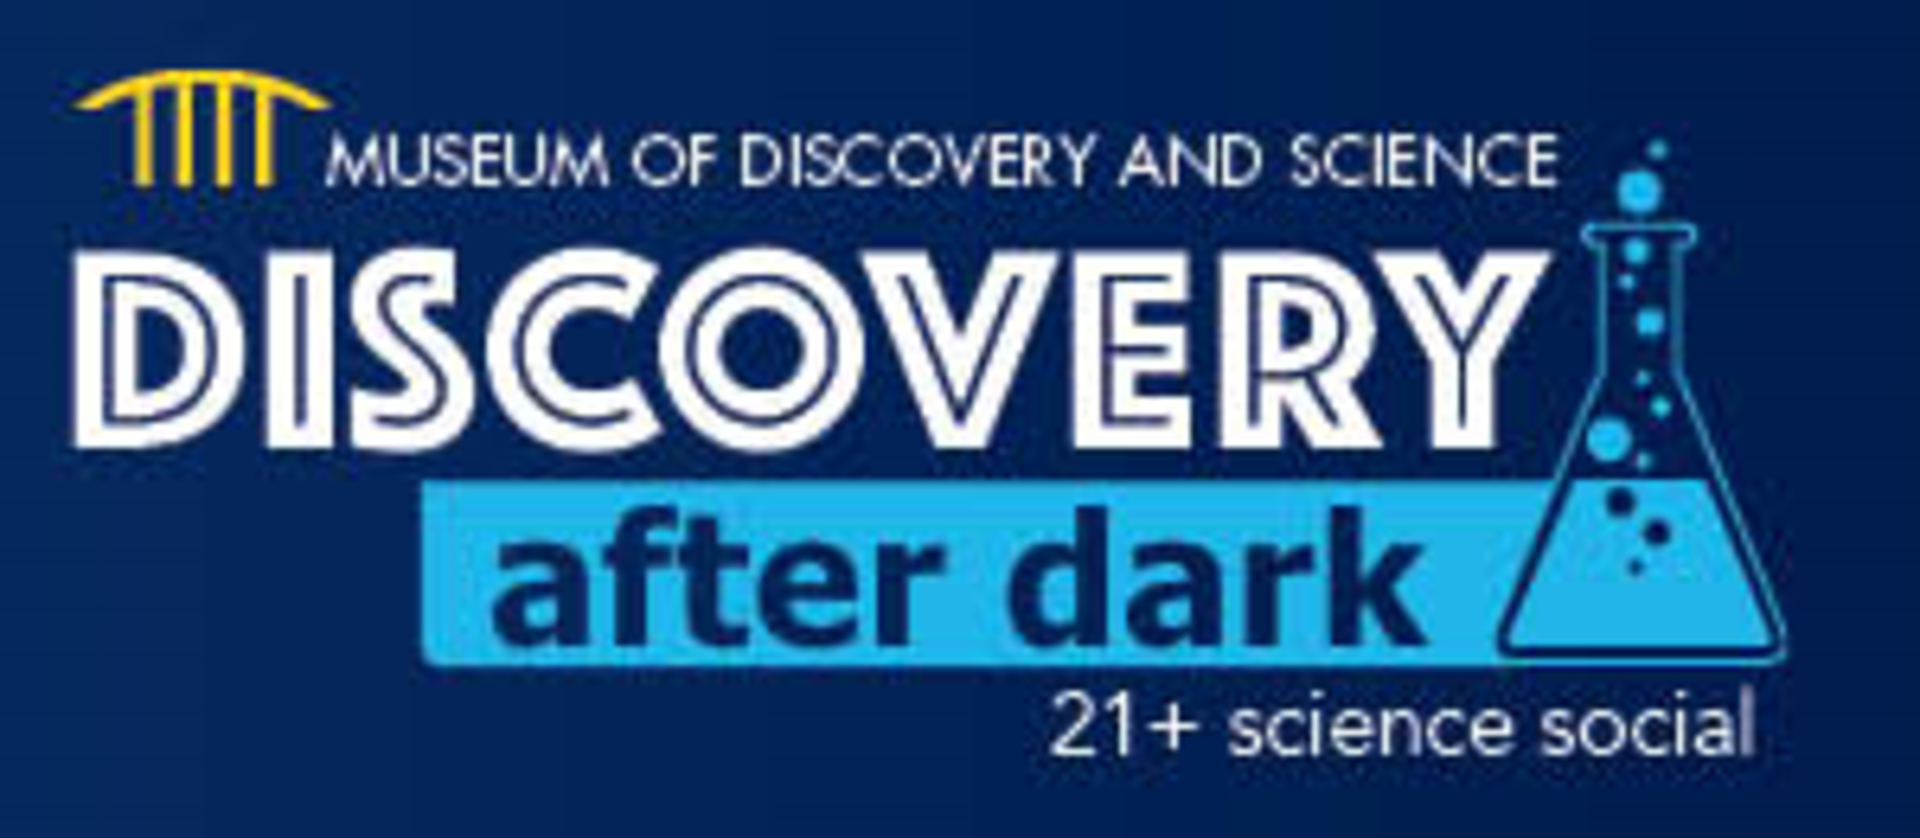 Museum of Discovery and Science - Discovery After Dark: DINOSAUR